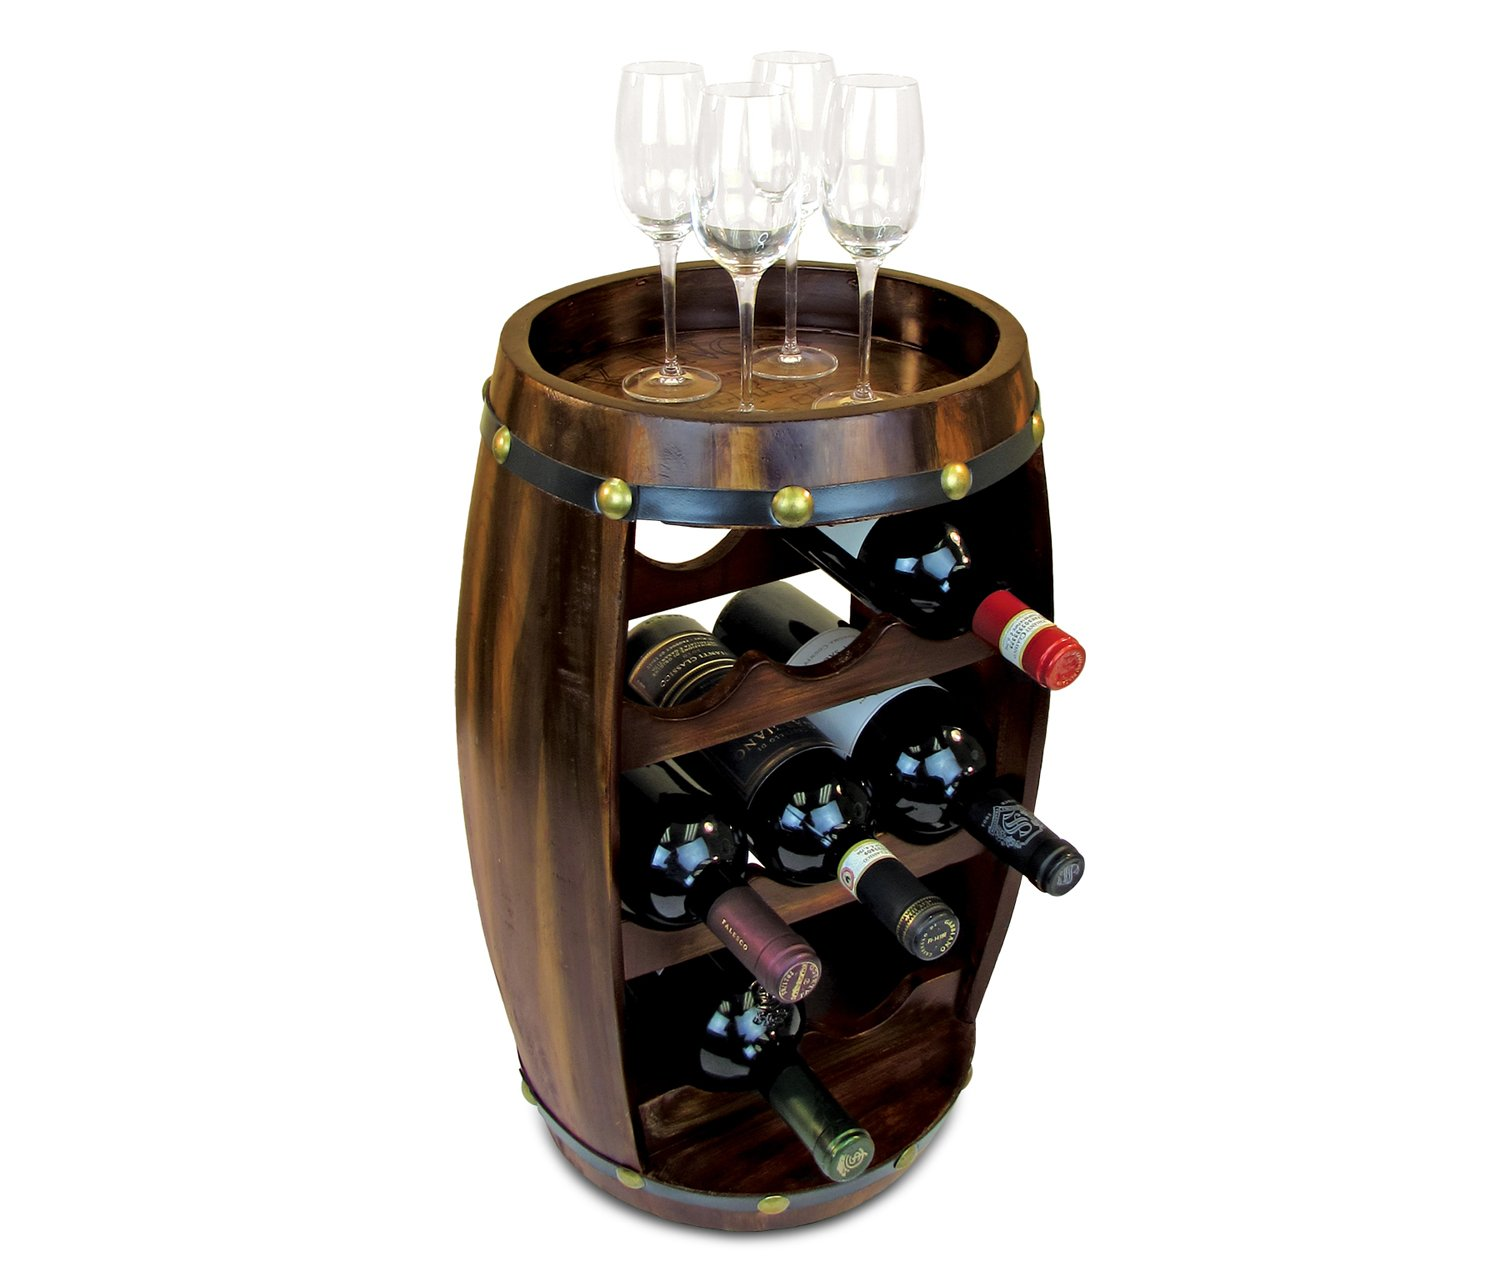 Wine Rack Freestanding Wooden Barrel Shape Hold 8 Bottles - Wine Décor Holder Storage Furniture Accessory 19.3''x10.4'' For Home, Kitchen, Bar, Living Room - Counter Top or Floor Stand - Alexander #9420 by Puzzled